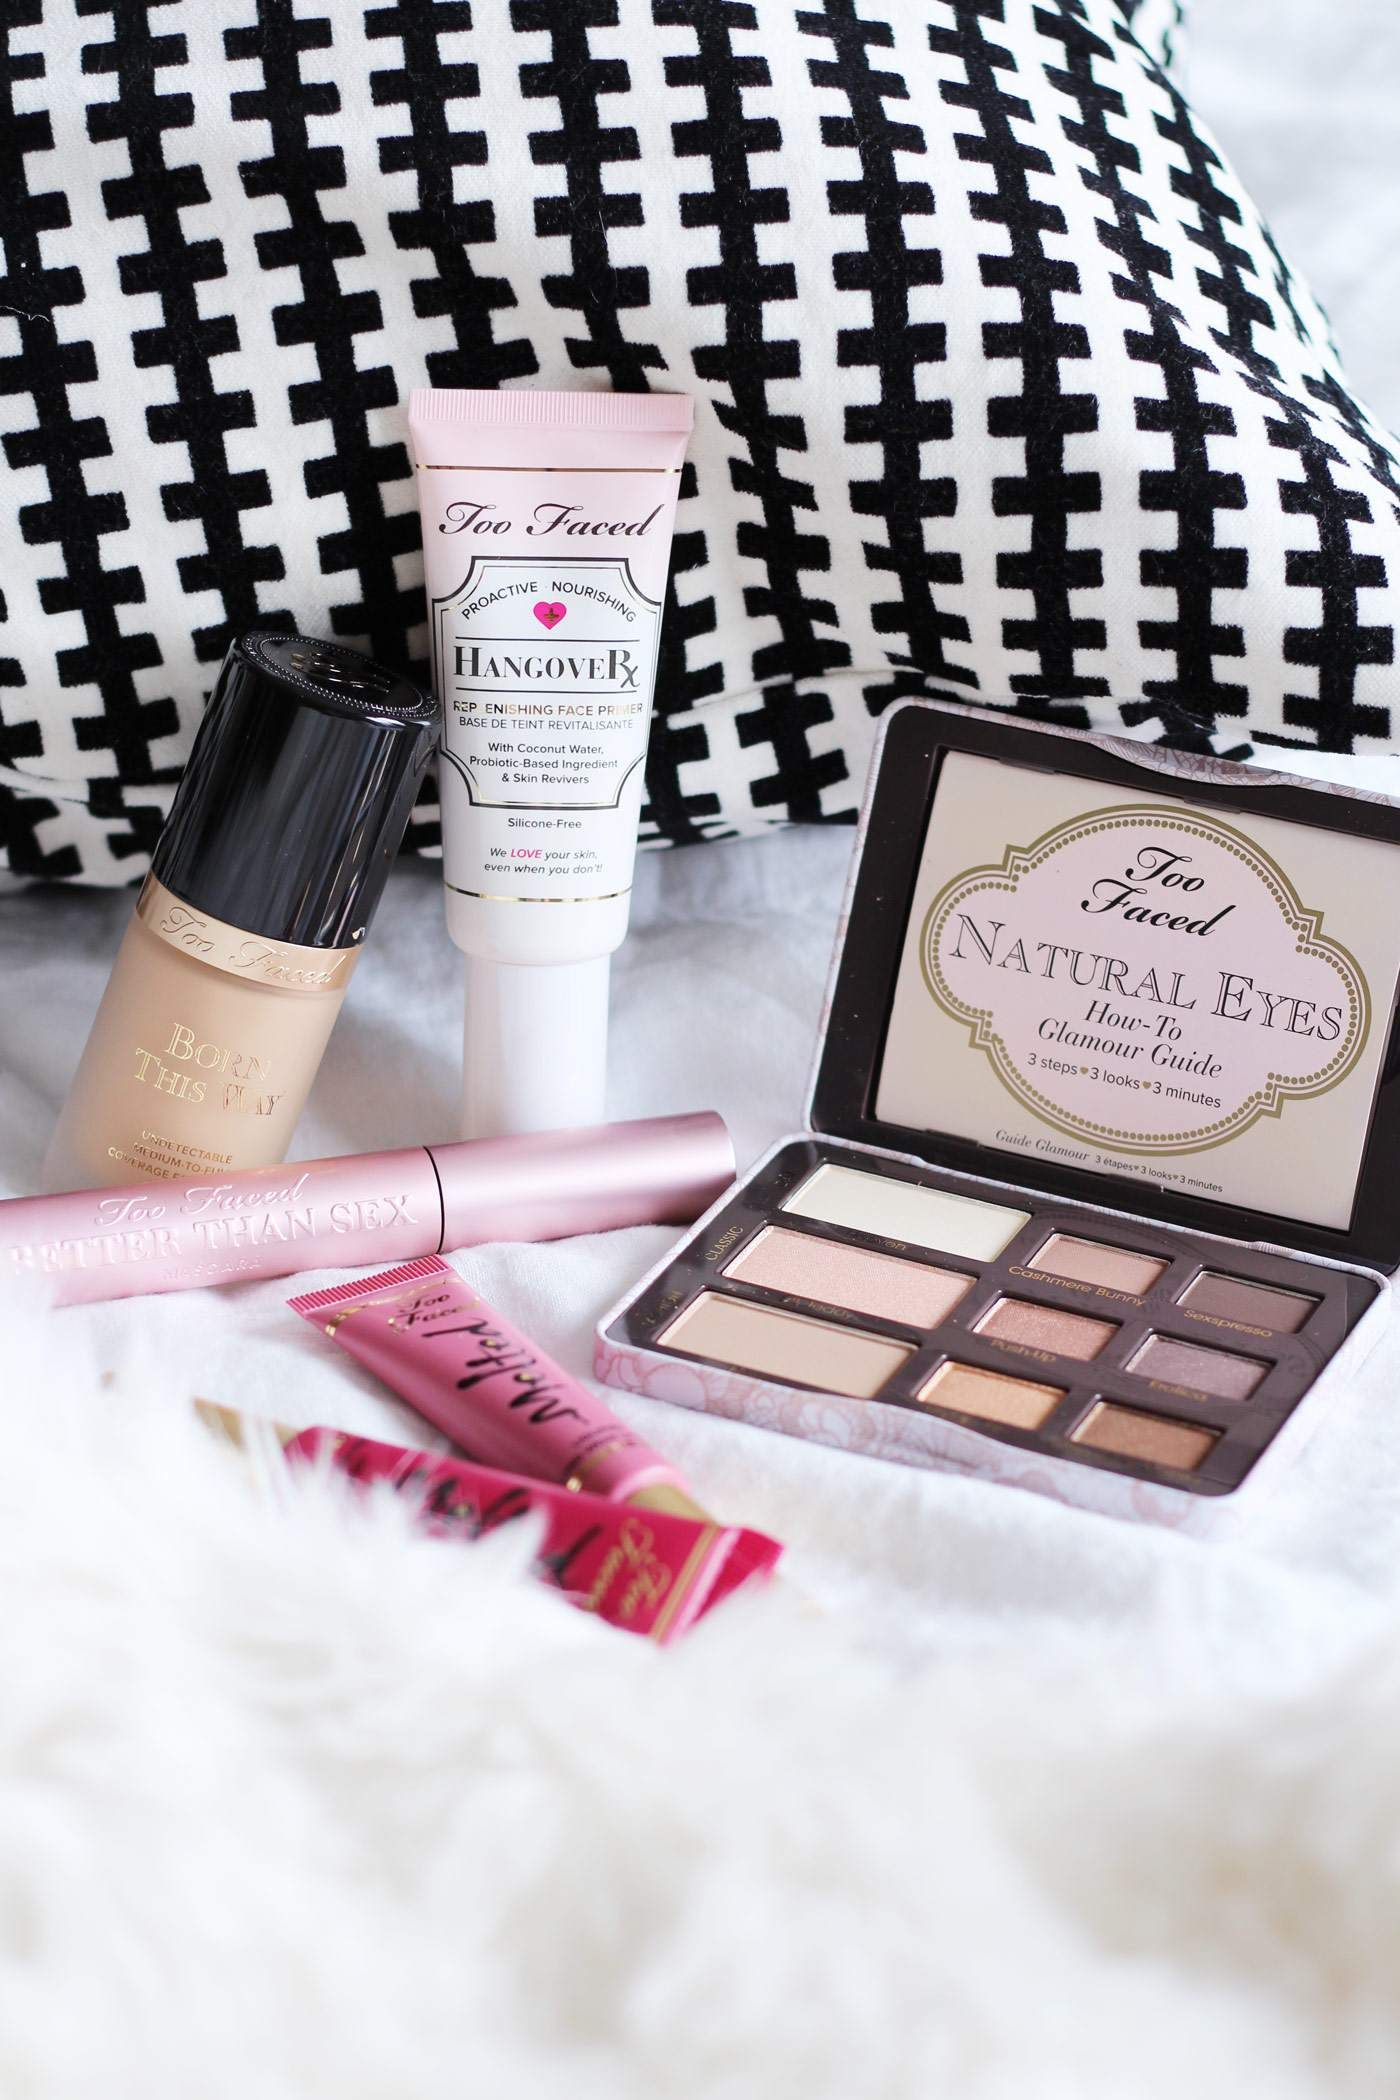 Too Faced Cosmetics Haul and First Impressions Too faced